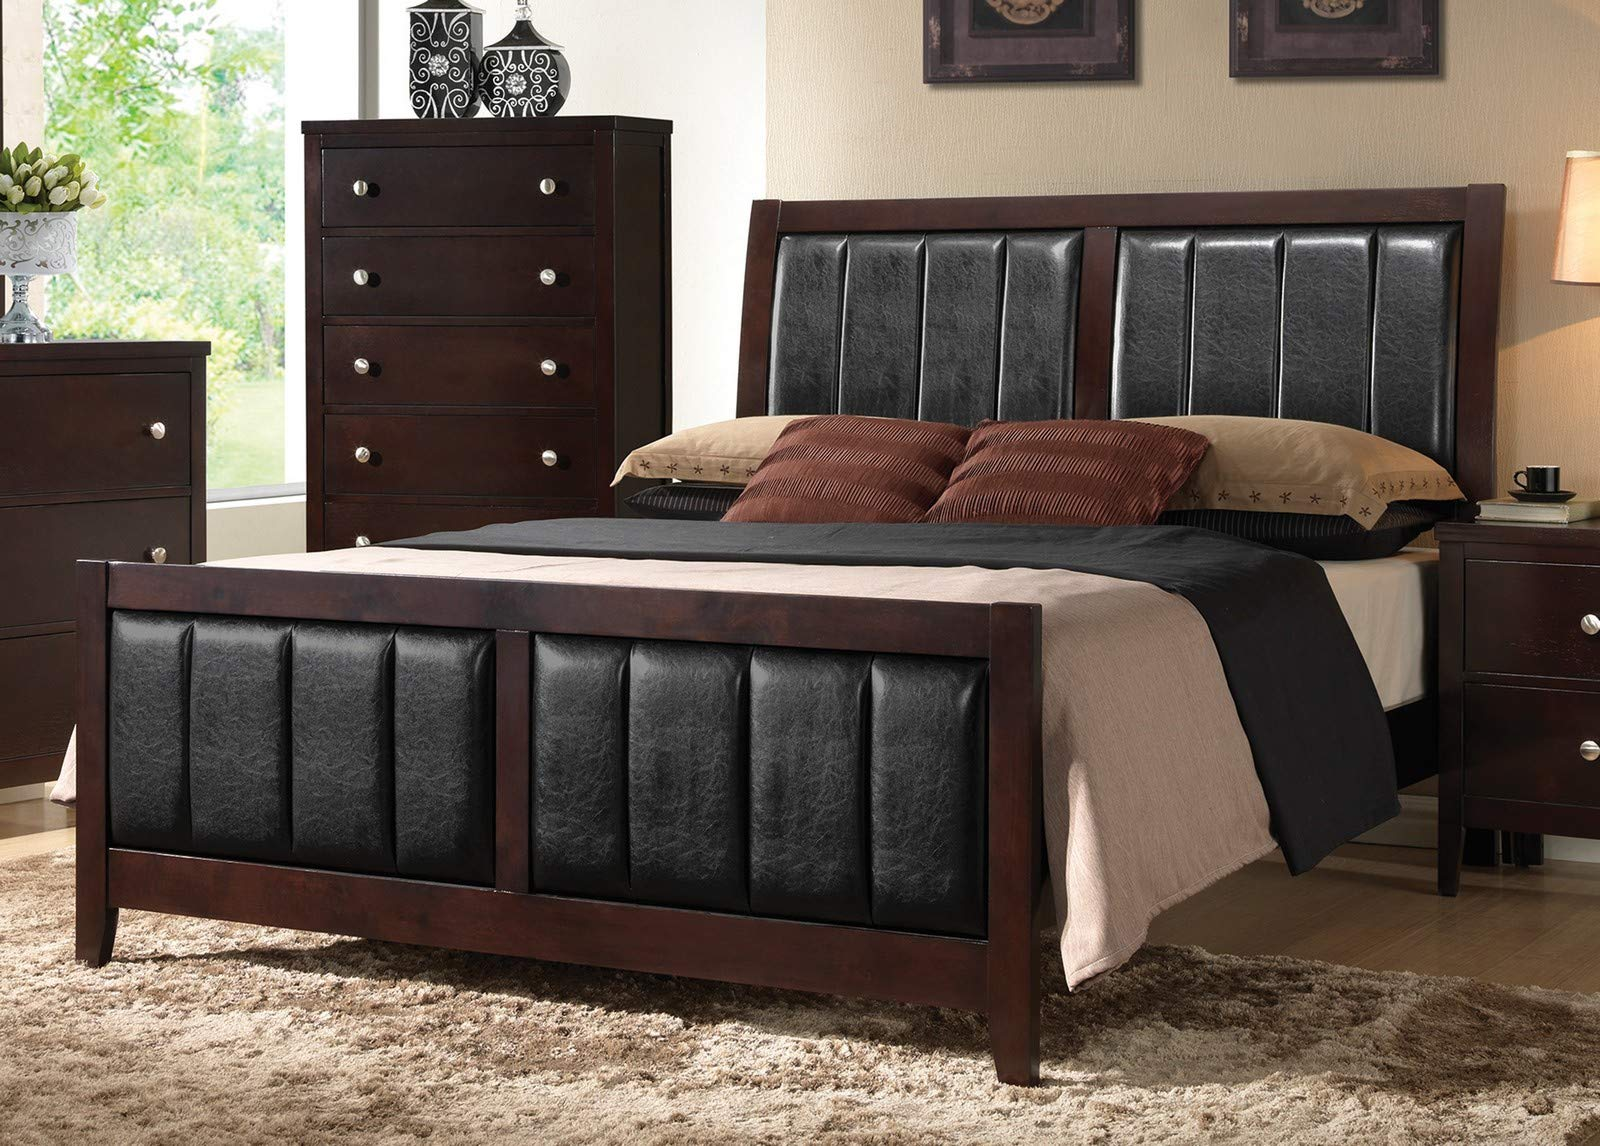 Coaster Home Furnishings 202091Q Upholstered Bed, Black/Cappuccino